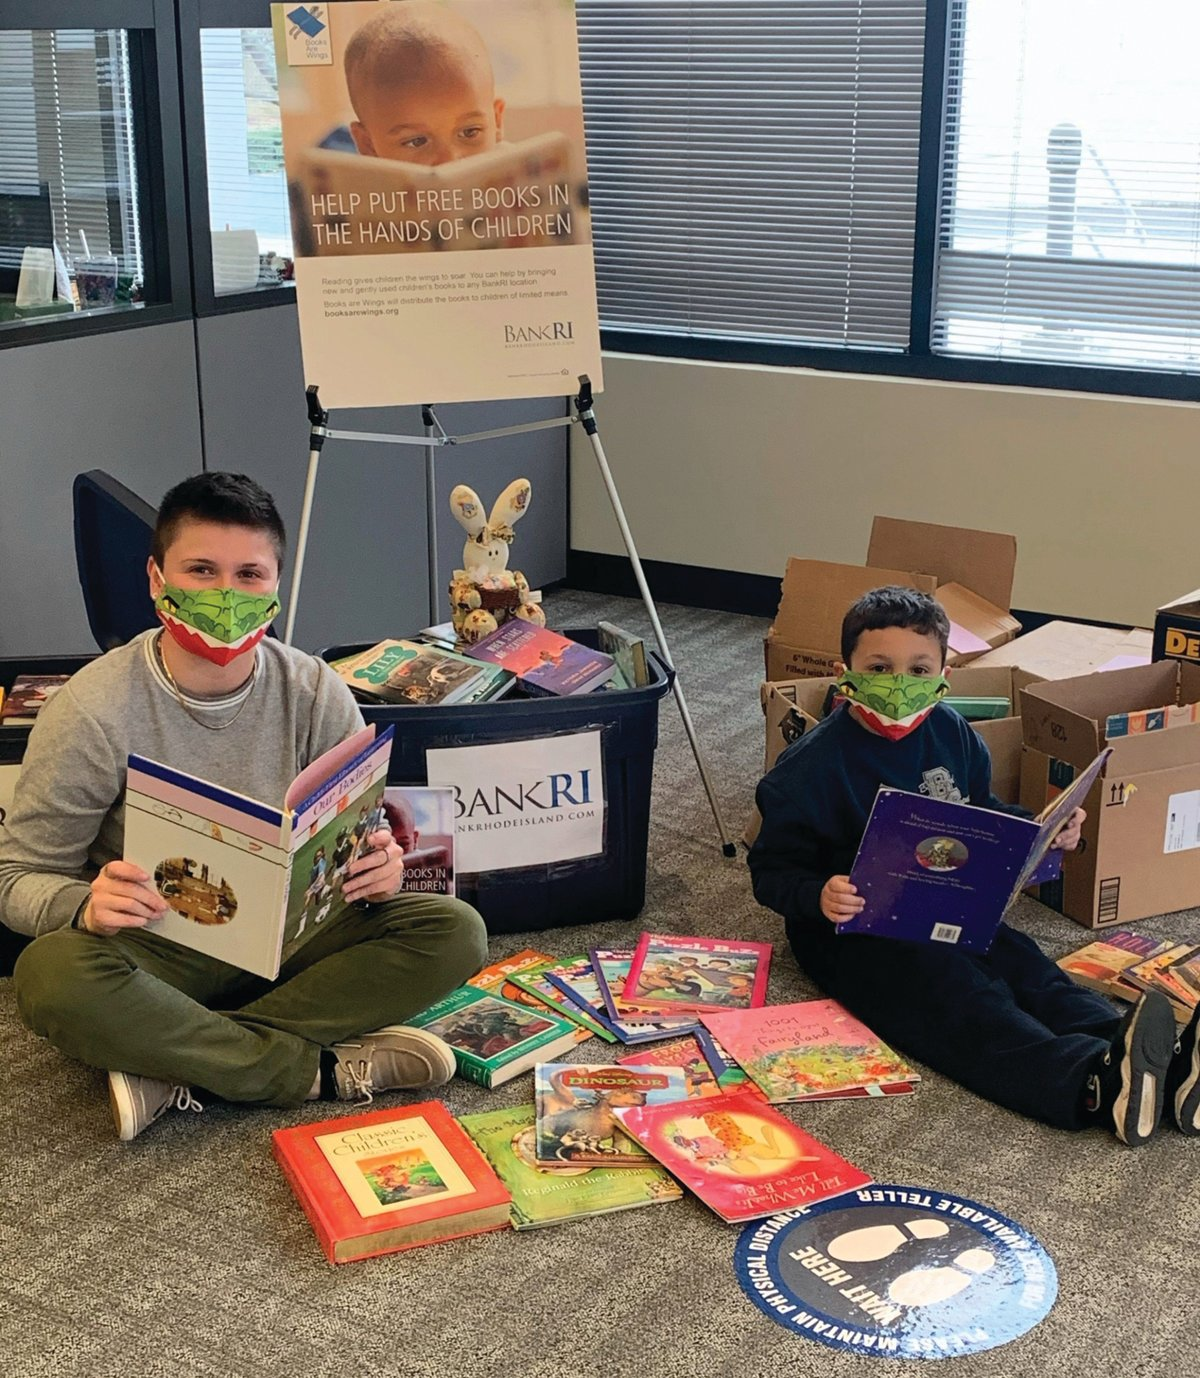 It's Always a Good Time to Read: Steven Fennessy, 7, takes a moment to give a final read to one of the 11 books he donated at BankRI's Atwood Avenue branch in support of this year's Children's Book Drive. He's joined by Hannah Page, a BankRI teller.